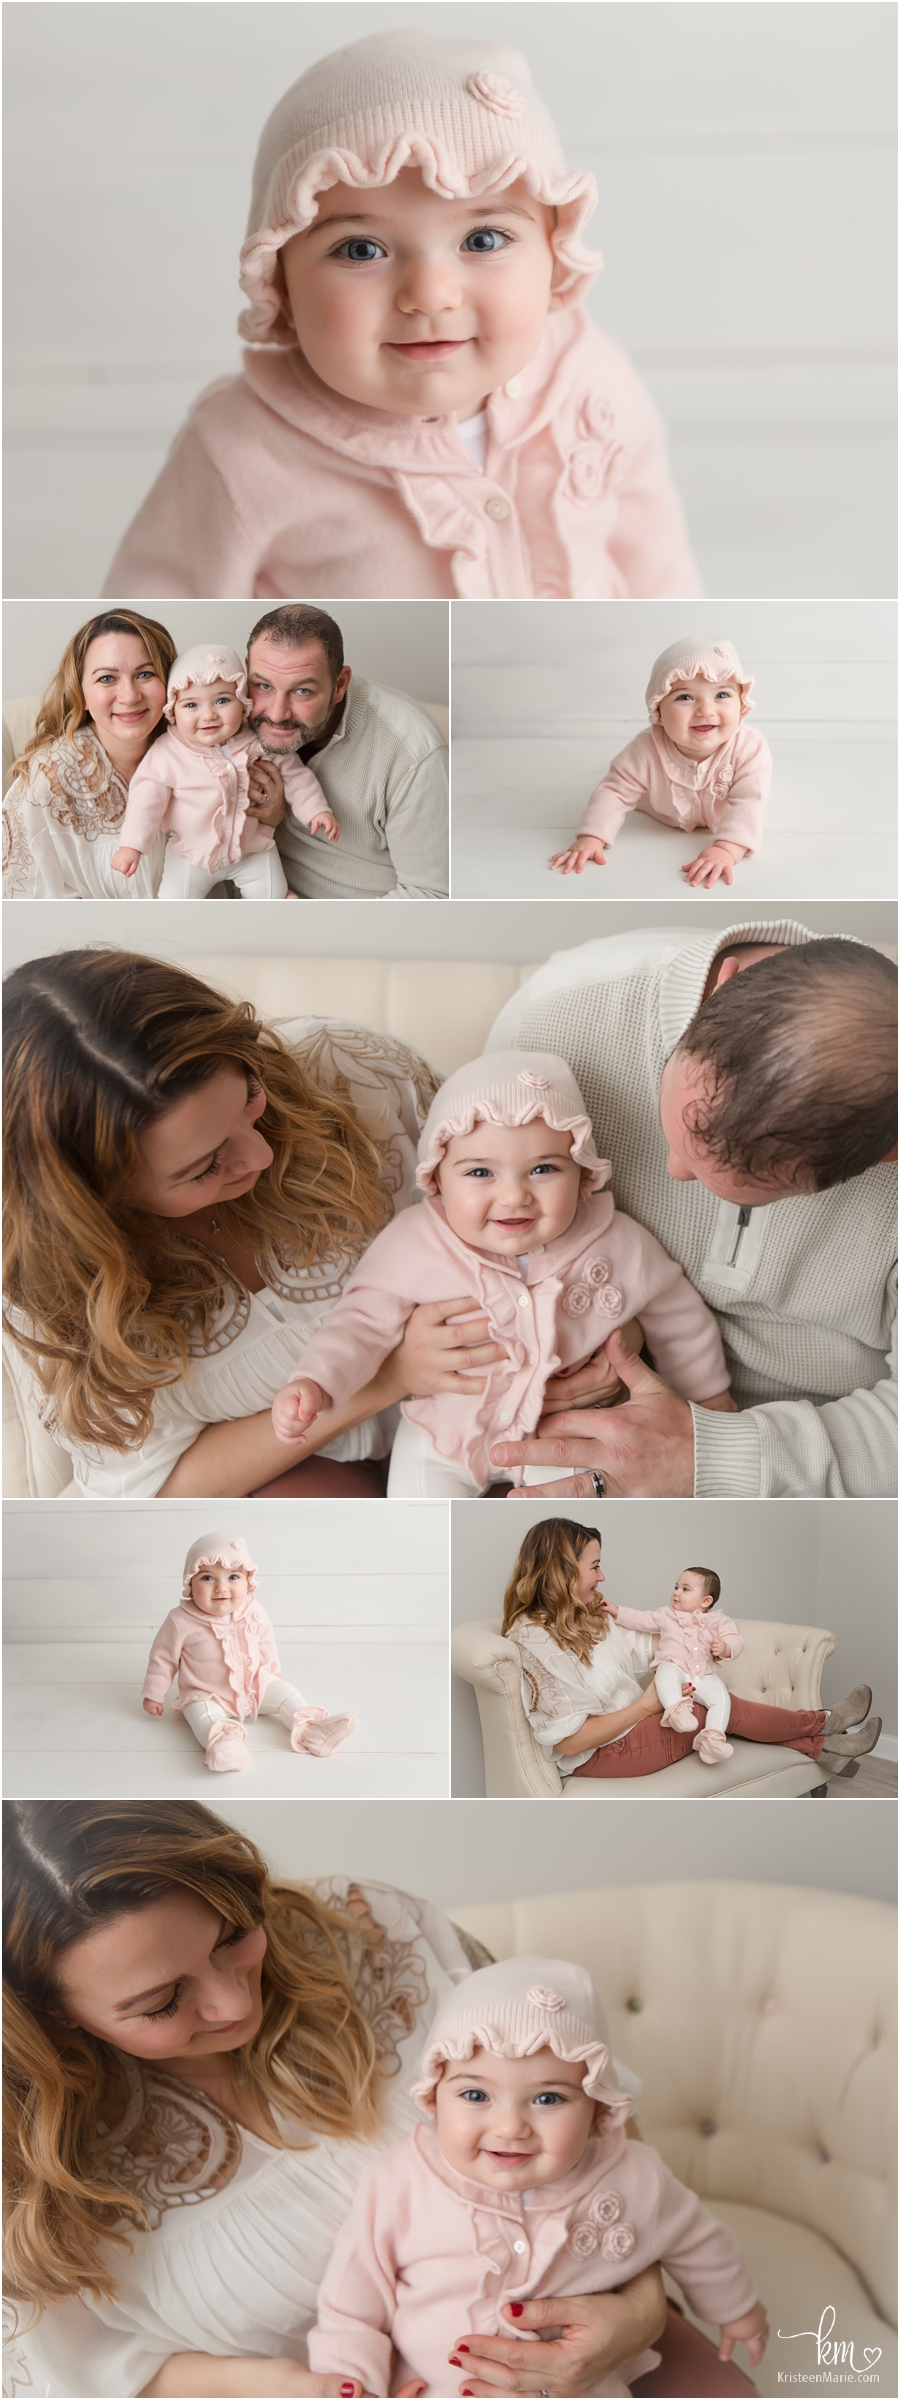 Sitter session poses - baby and family